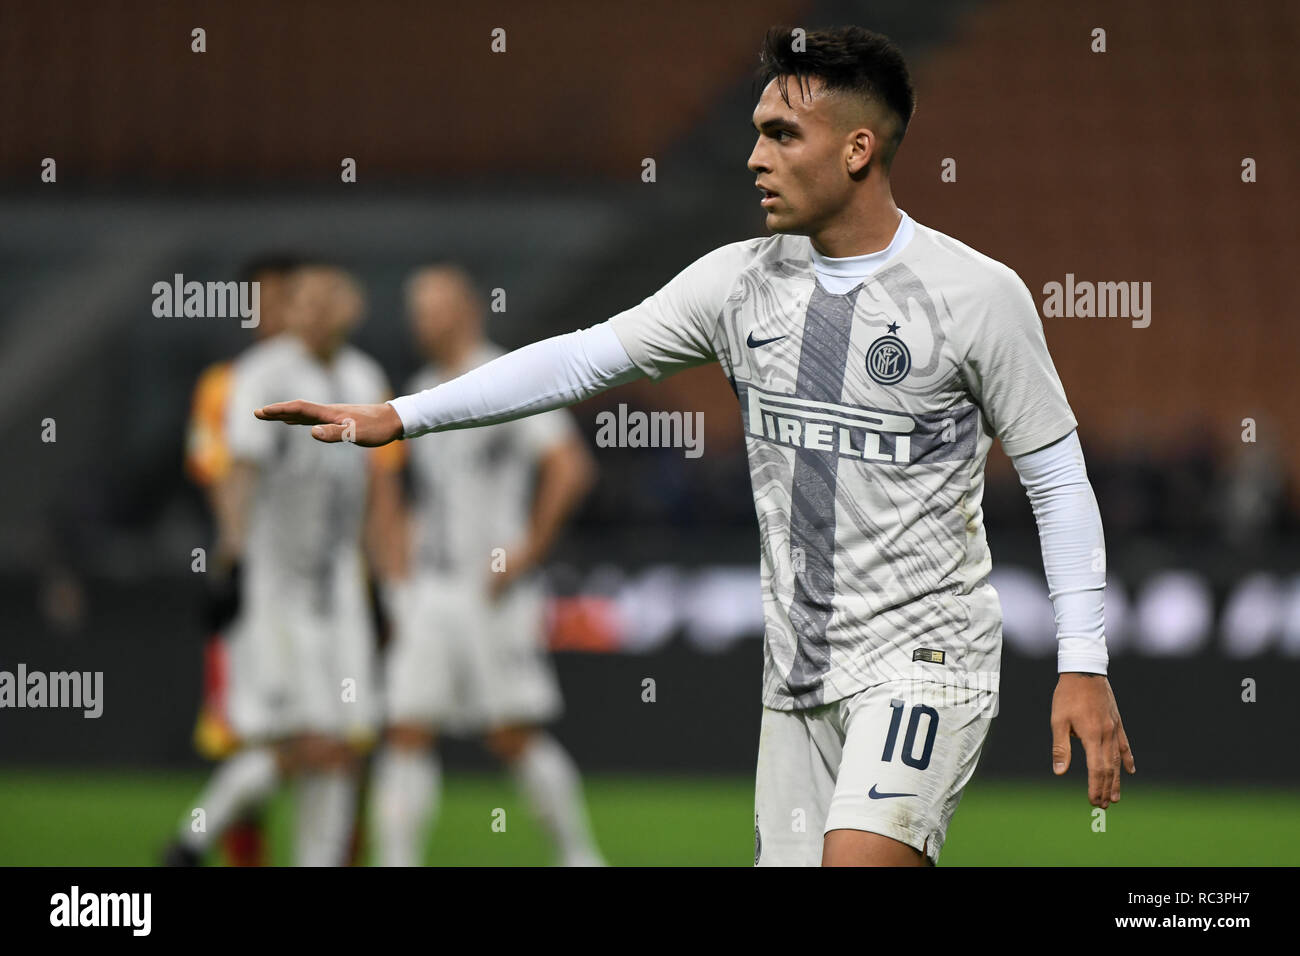 Milan, Italy. 13th Jan 2019. Forward Lautaro Martínez (Inter) gestures during the Italian Cup 'Coppa Italia' football match, Inter Milan vs Benevento Calcio at San Siro Meazza Stadium in Milan, Italy on 13 January 2019. The football match is played behind closed doors after Napoli's Senegalese player Kalidou Koulibaly was subject to racist chants by FC Internazionale's 'ultra' fans during the Boxing Day match. Credit: Piero Cruciatti/Alamy Live News - Stock Image